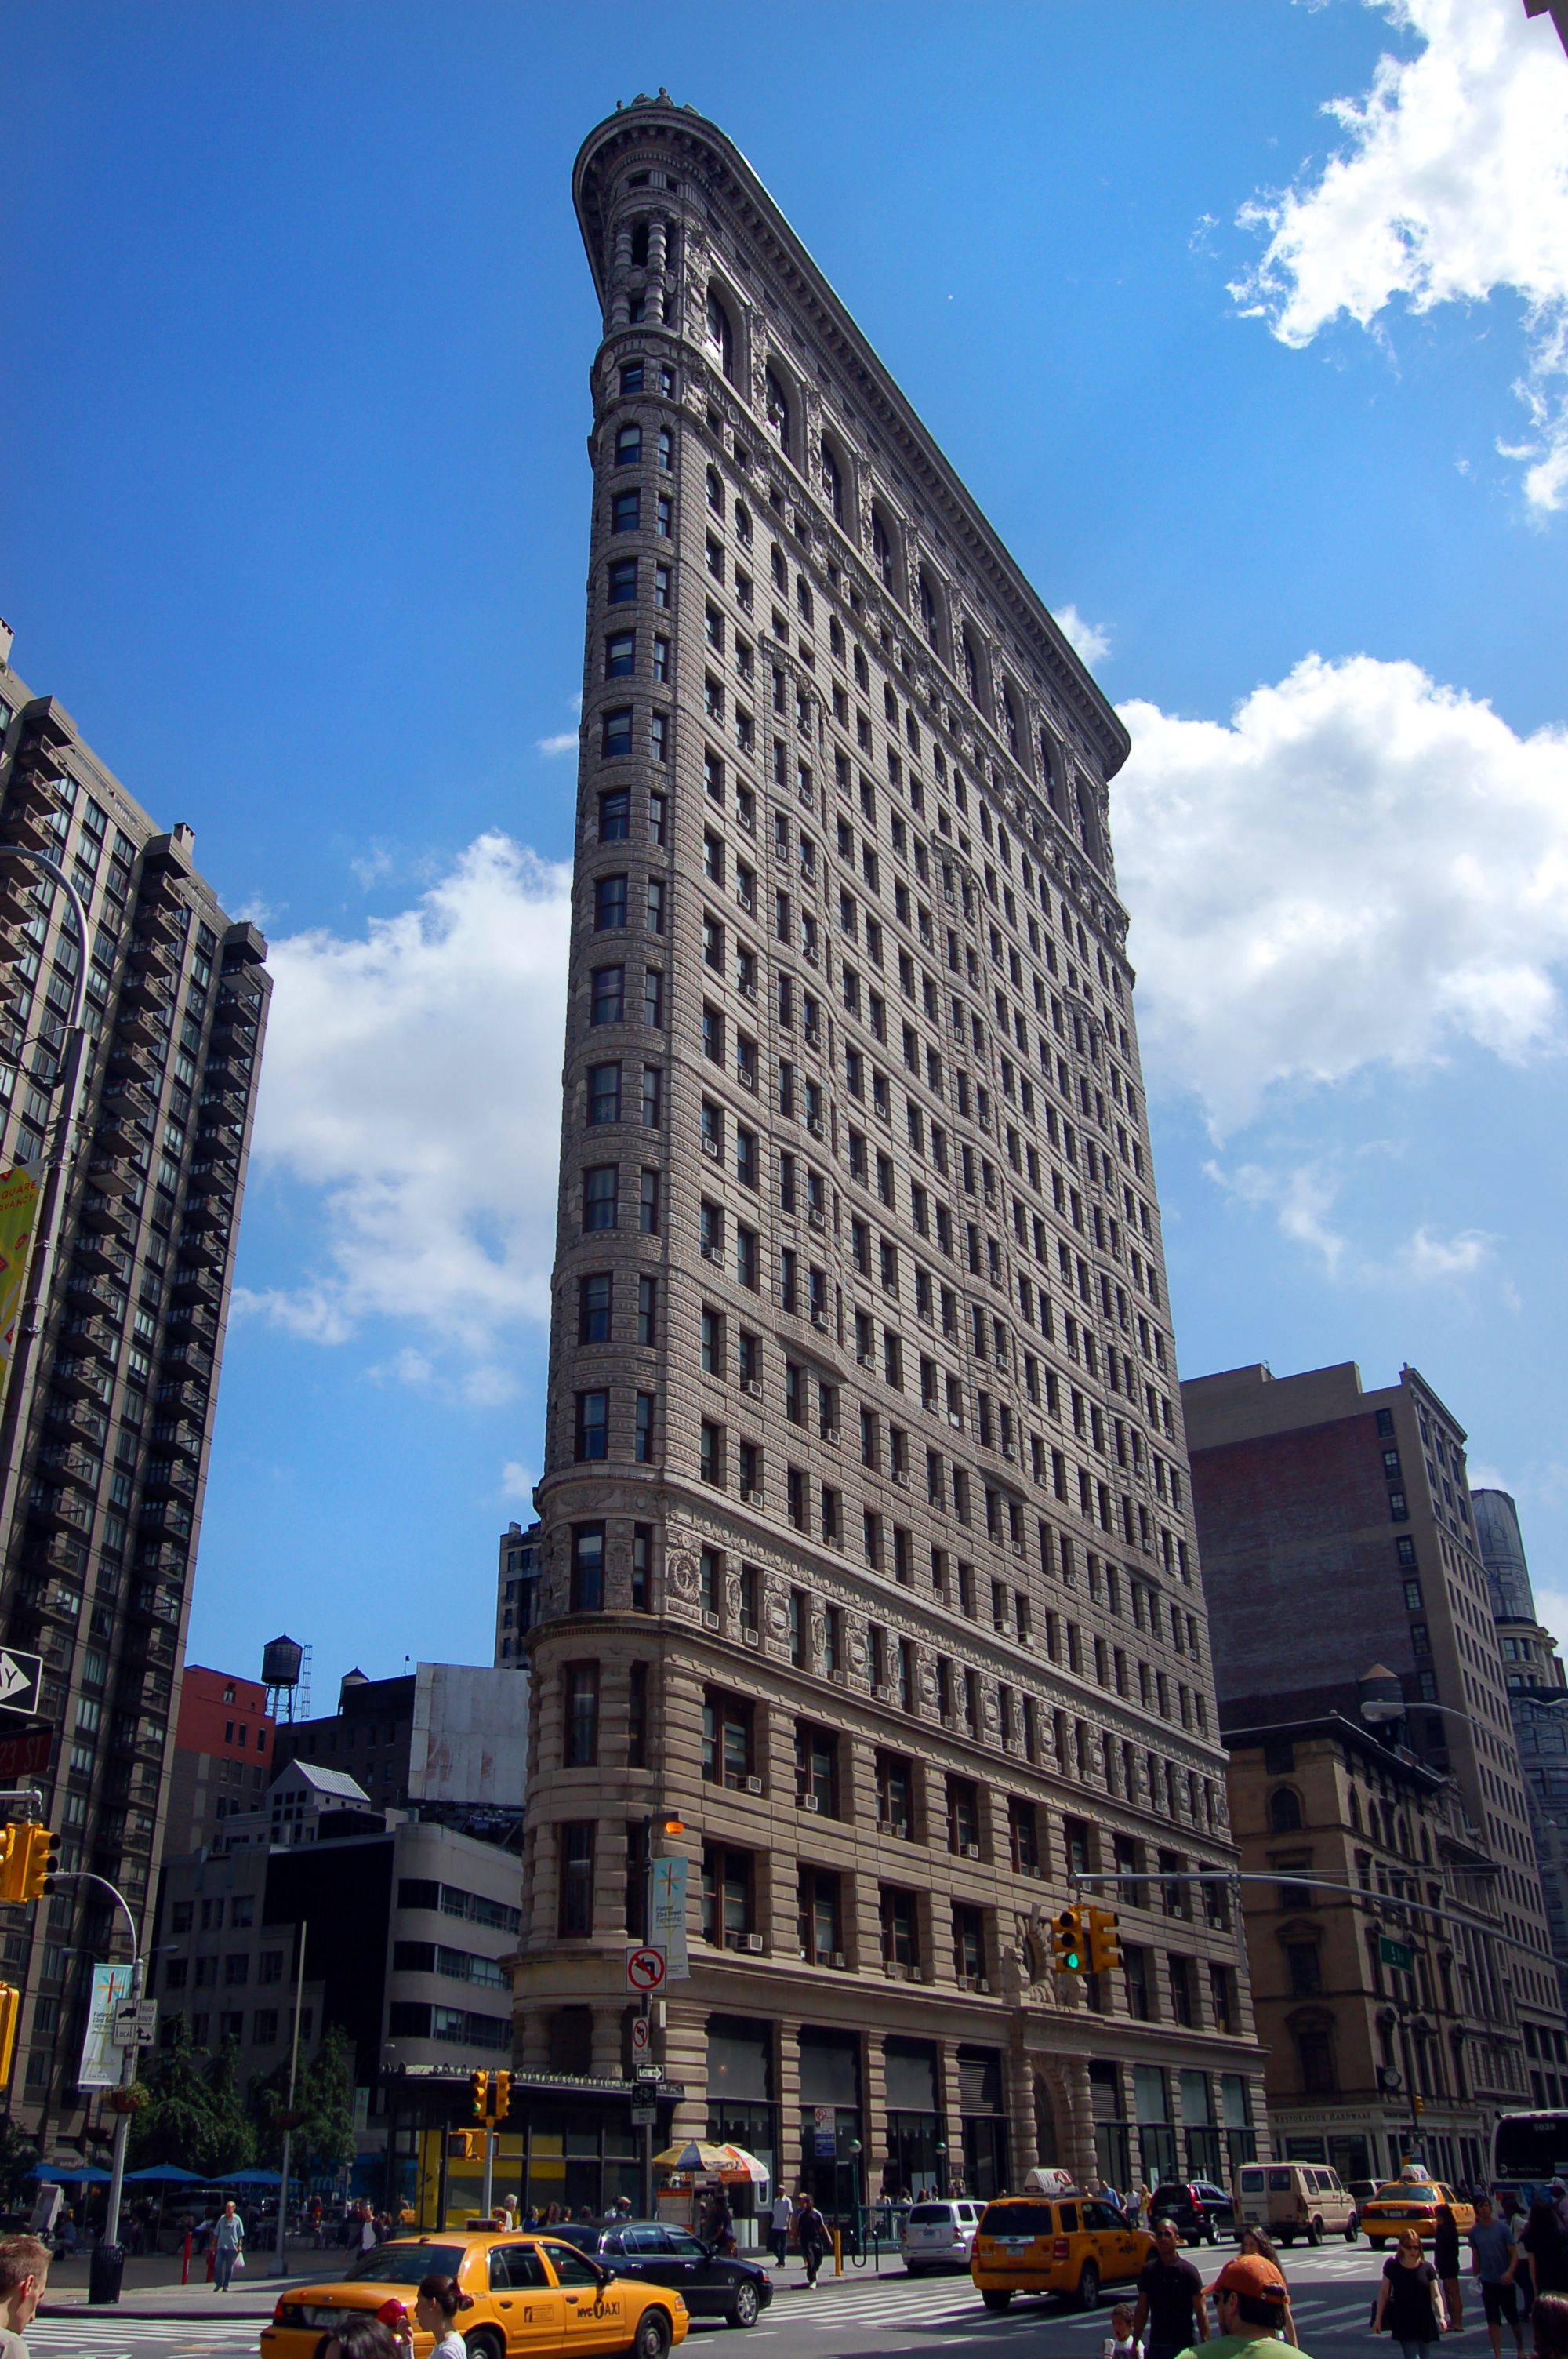 The Flatiron building is part of NYC's history, built in 1902. Visit Duane  Reade